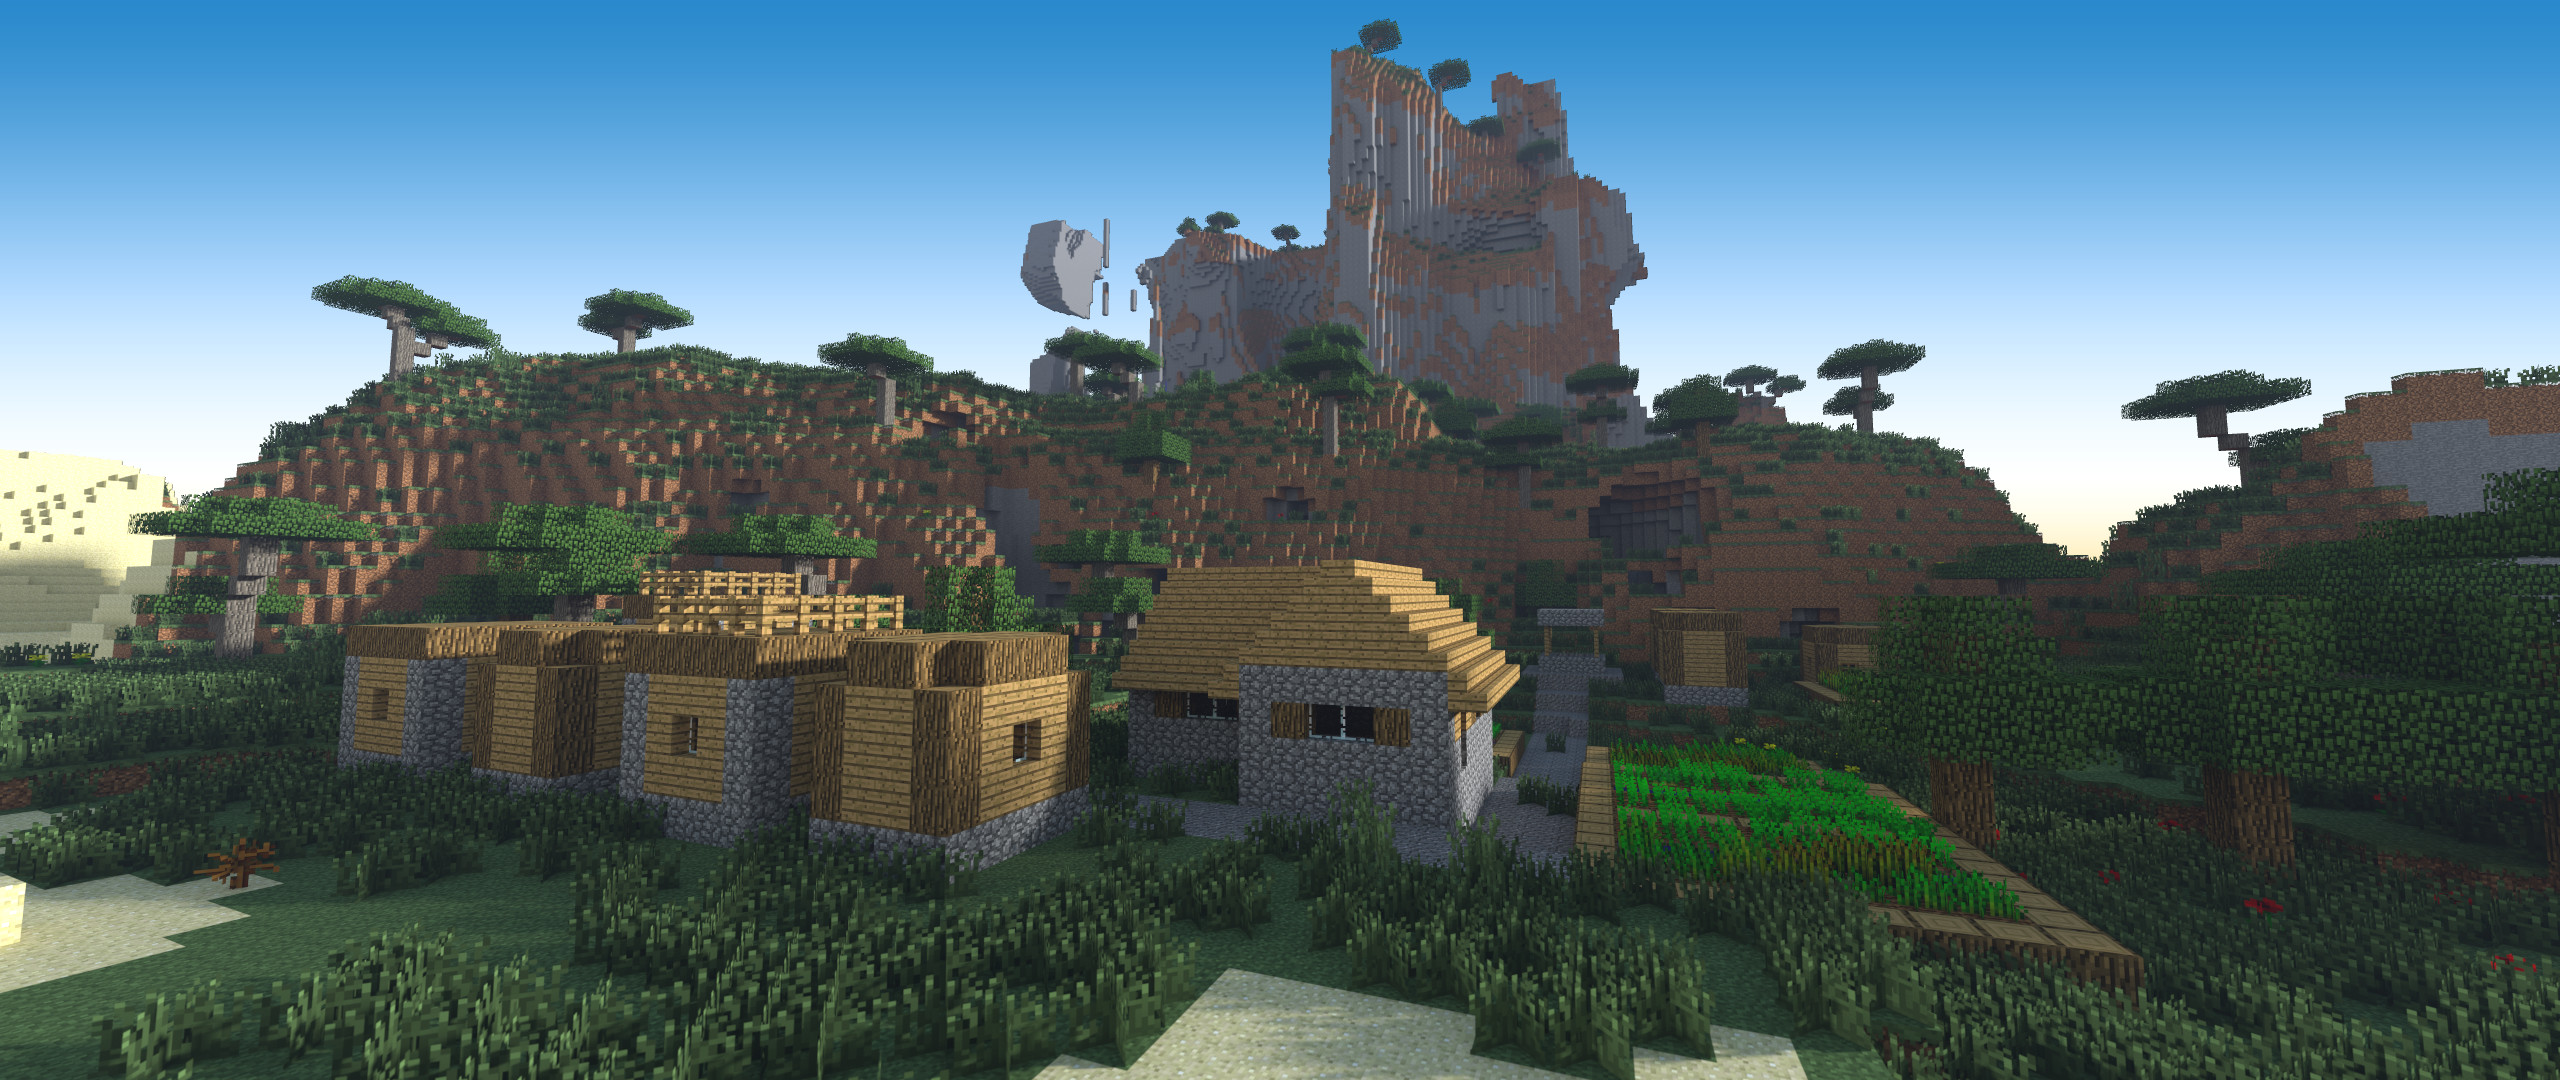 2560x1080 ... Minecraft Wallpapers New ...